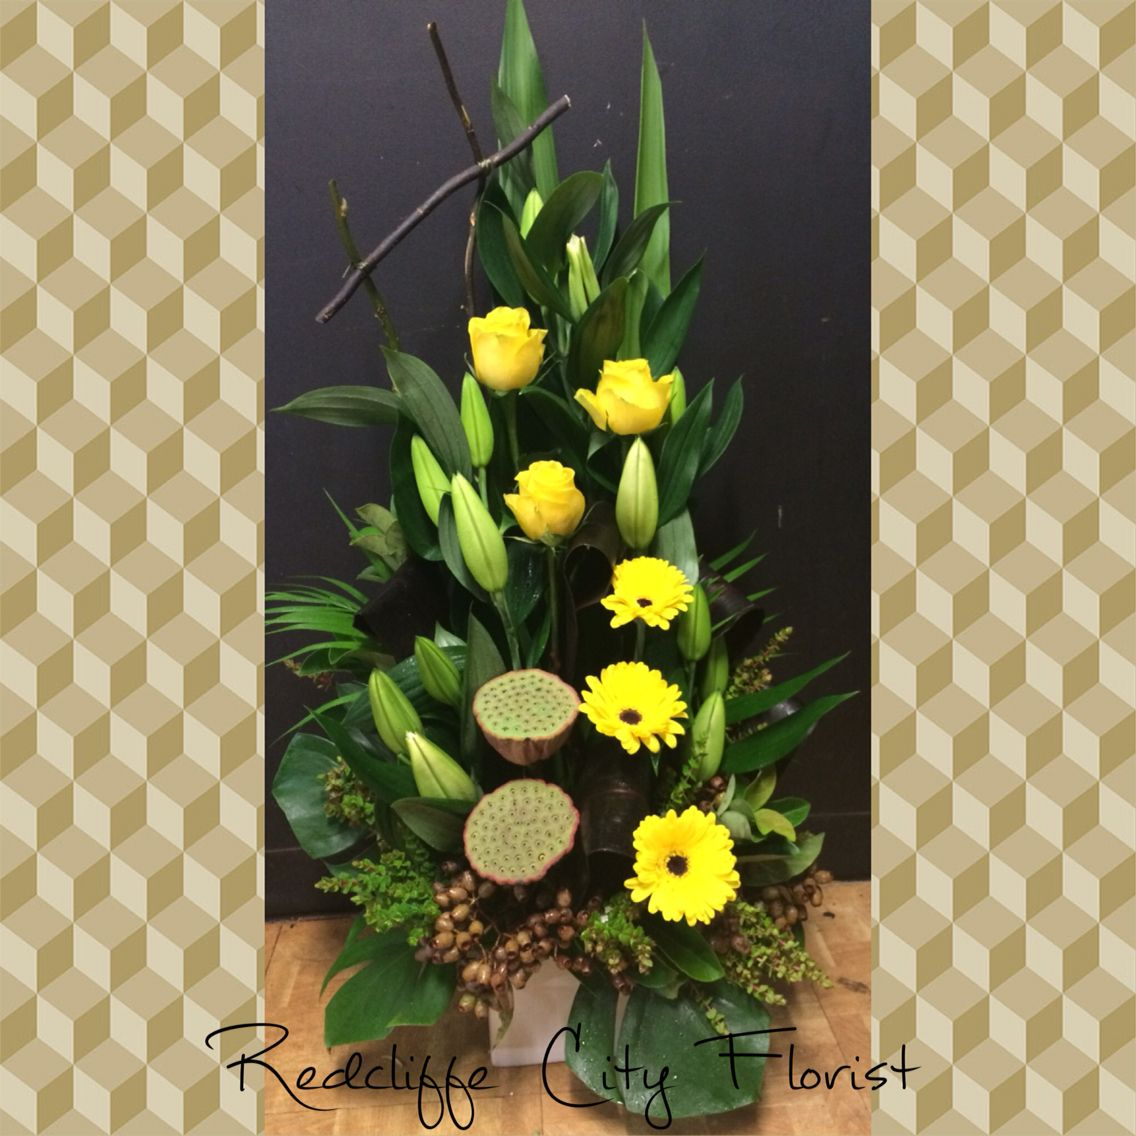 Made With Love From Redcliffe City Florist/Wedding Flowers & Coffee Cups